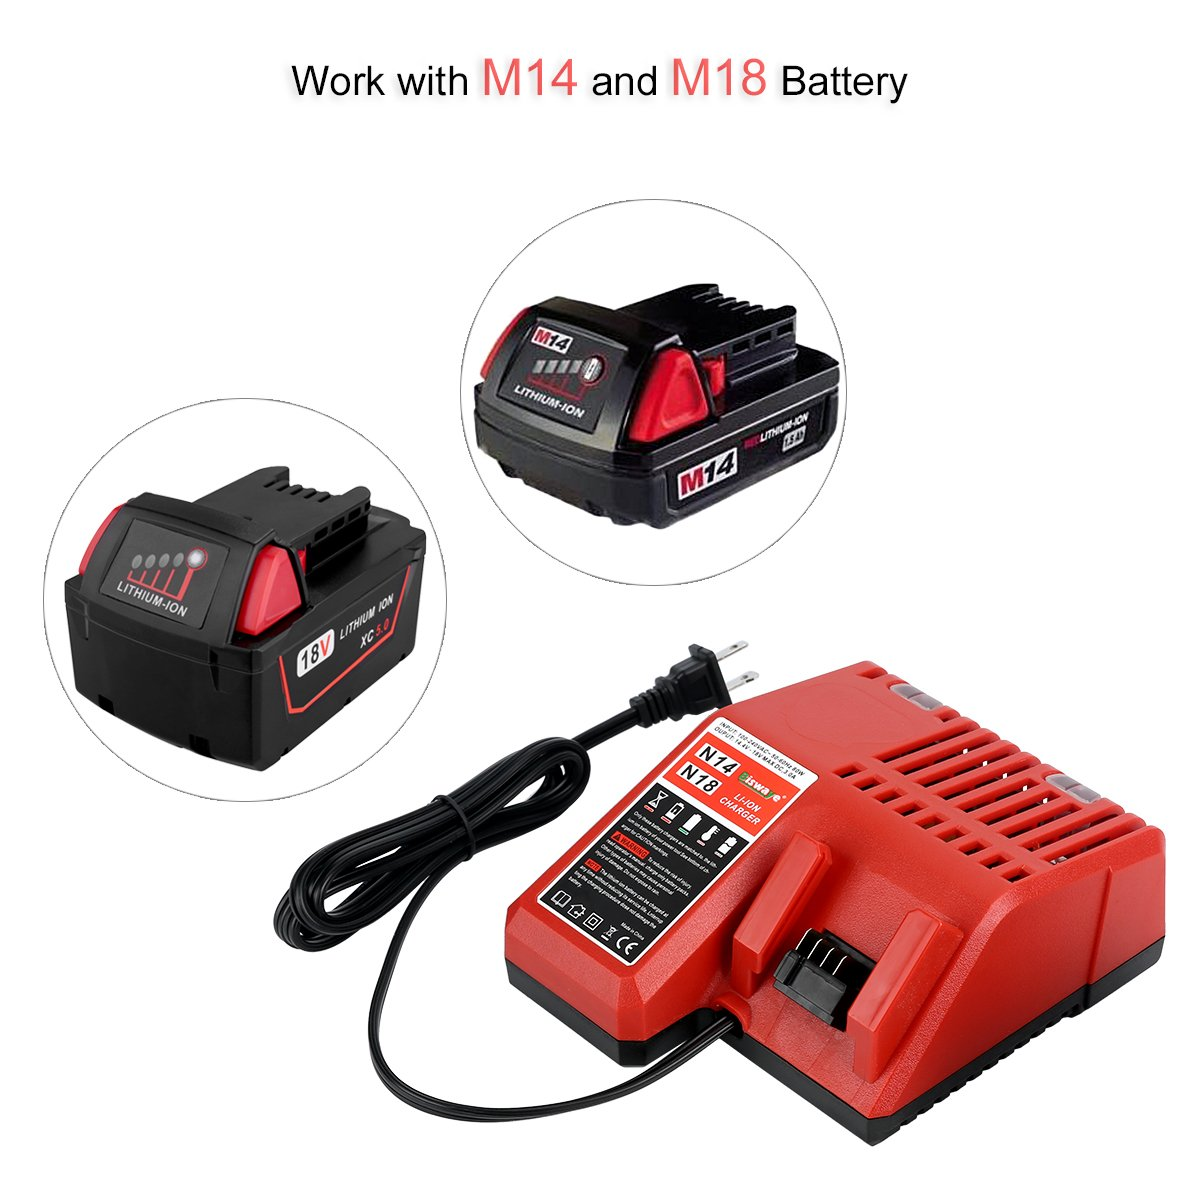 Replacement Lithium Ion Battery Charger Multi Voltage For 37 X Chargers Circuits And Projects Milwaukee M18 144v 18v 48 11 1850 1840 1815 1828